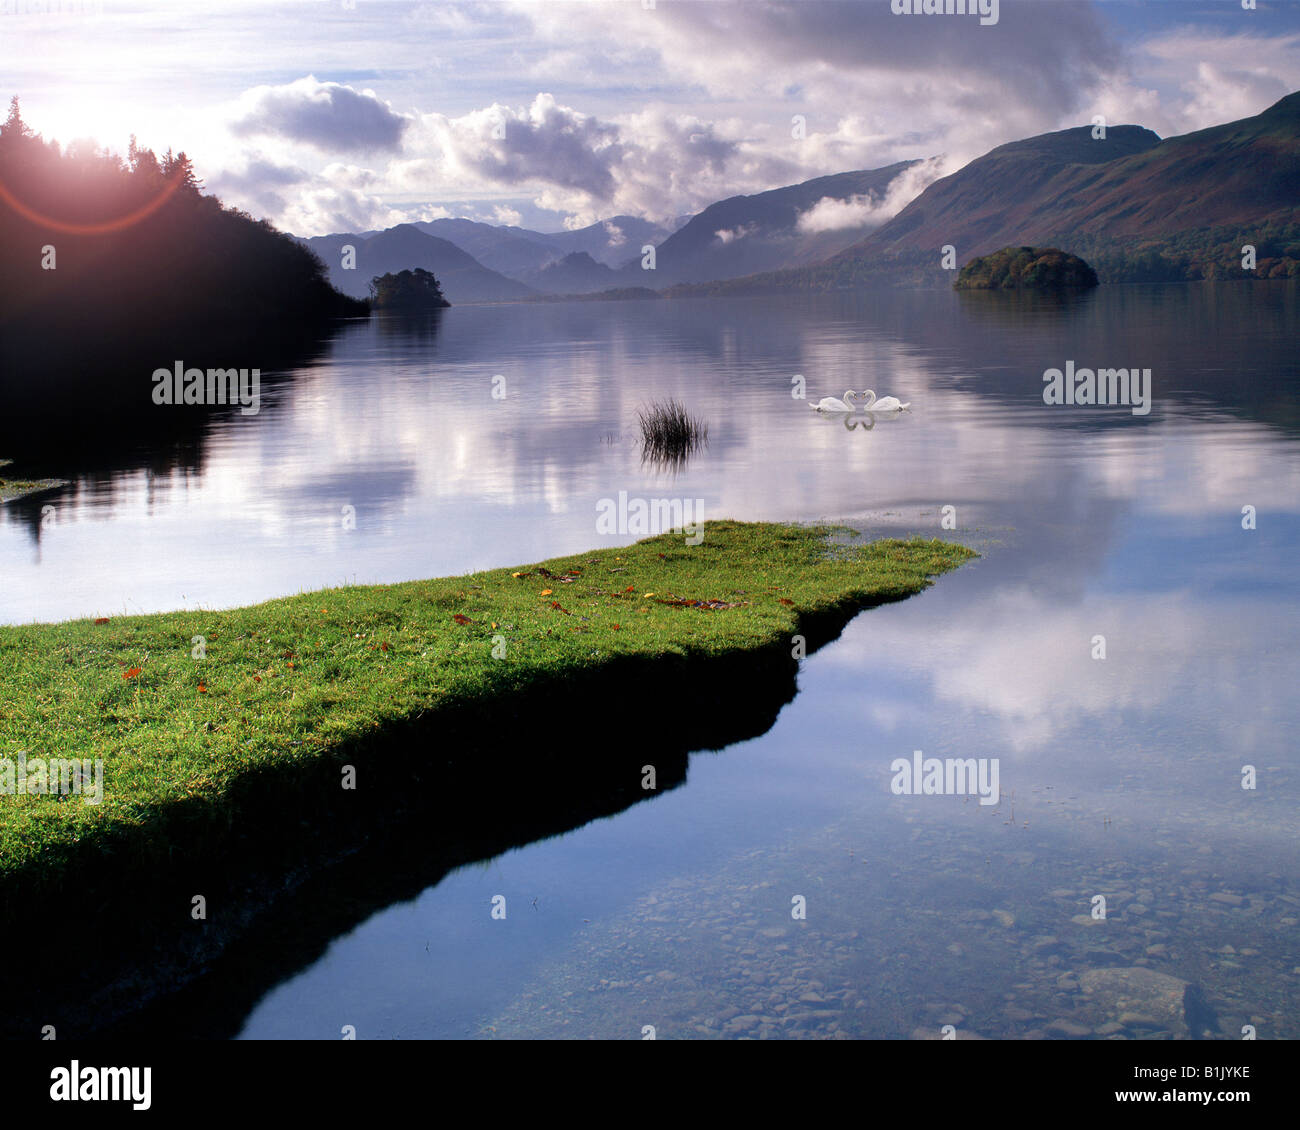 GB - CUMBRIA:  Derwentwater in the Lake District National Park - Stock Image